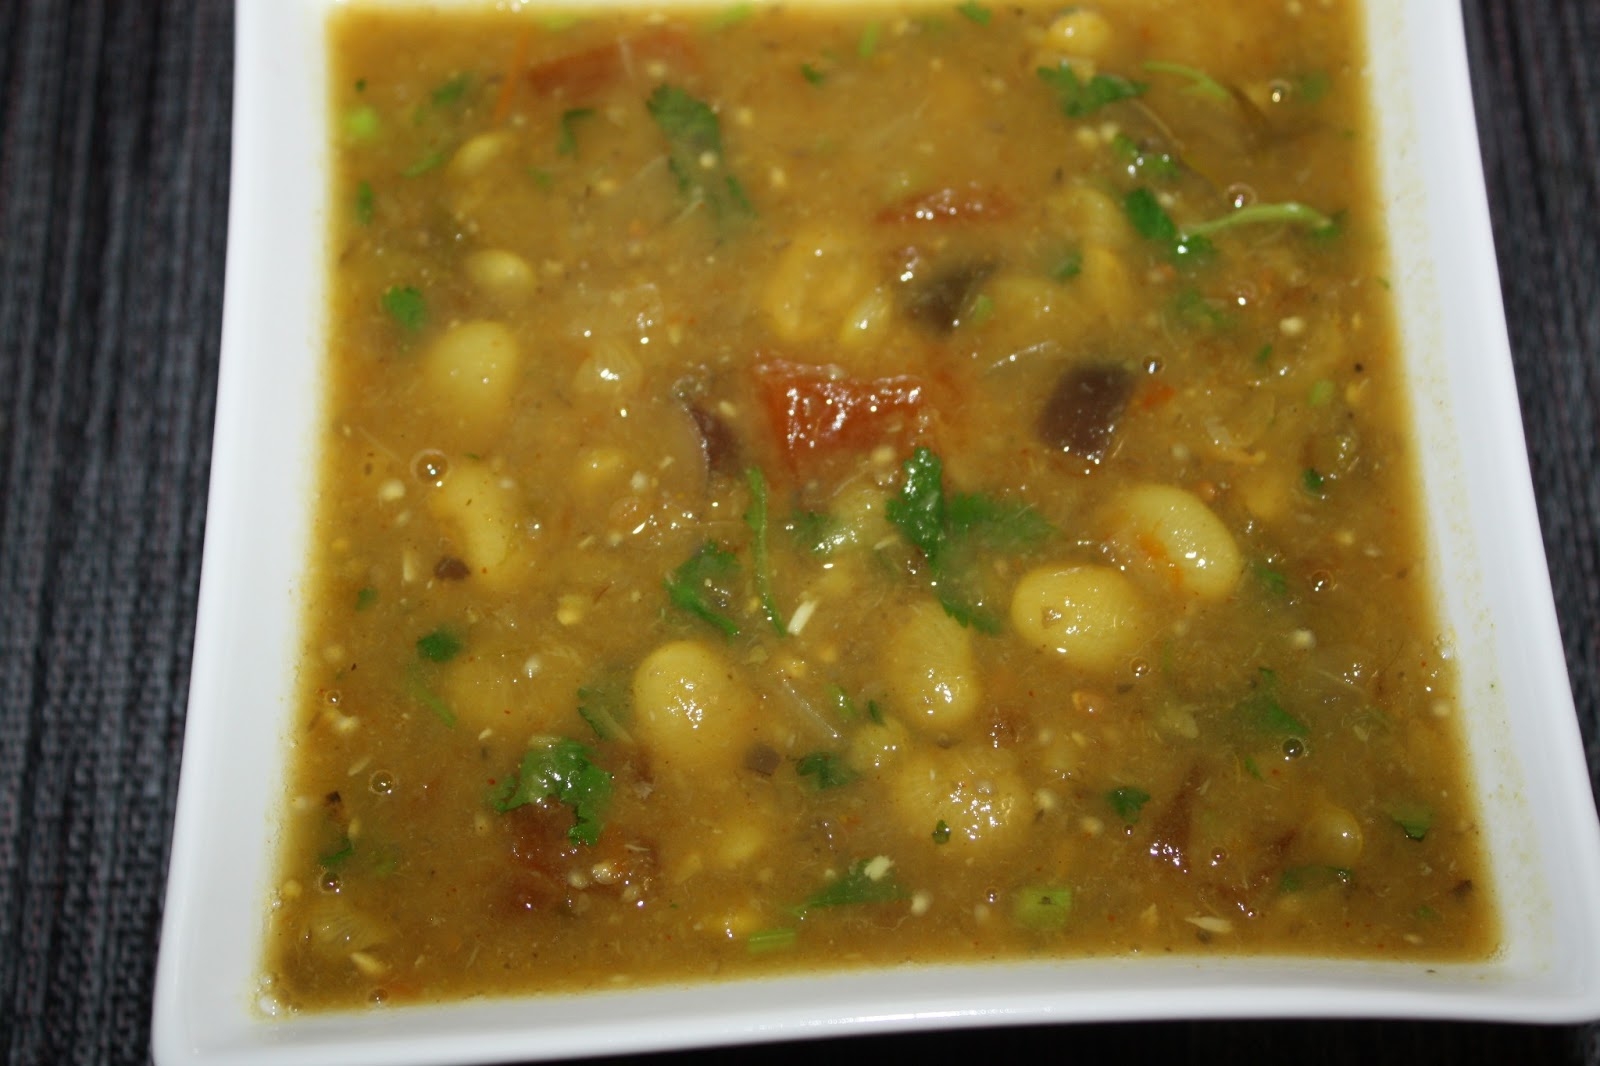 Recipes and Tips To Fight M.S.Curried Lima Beans and Eggplant Stew